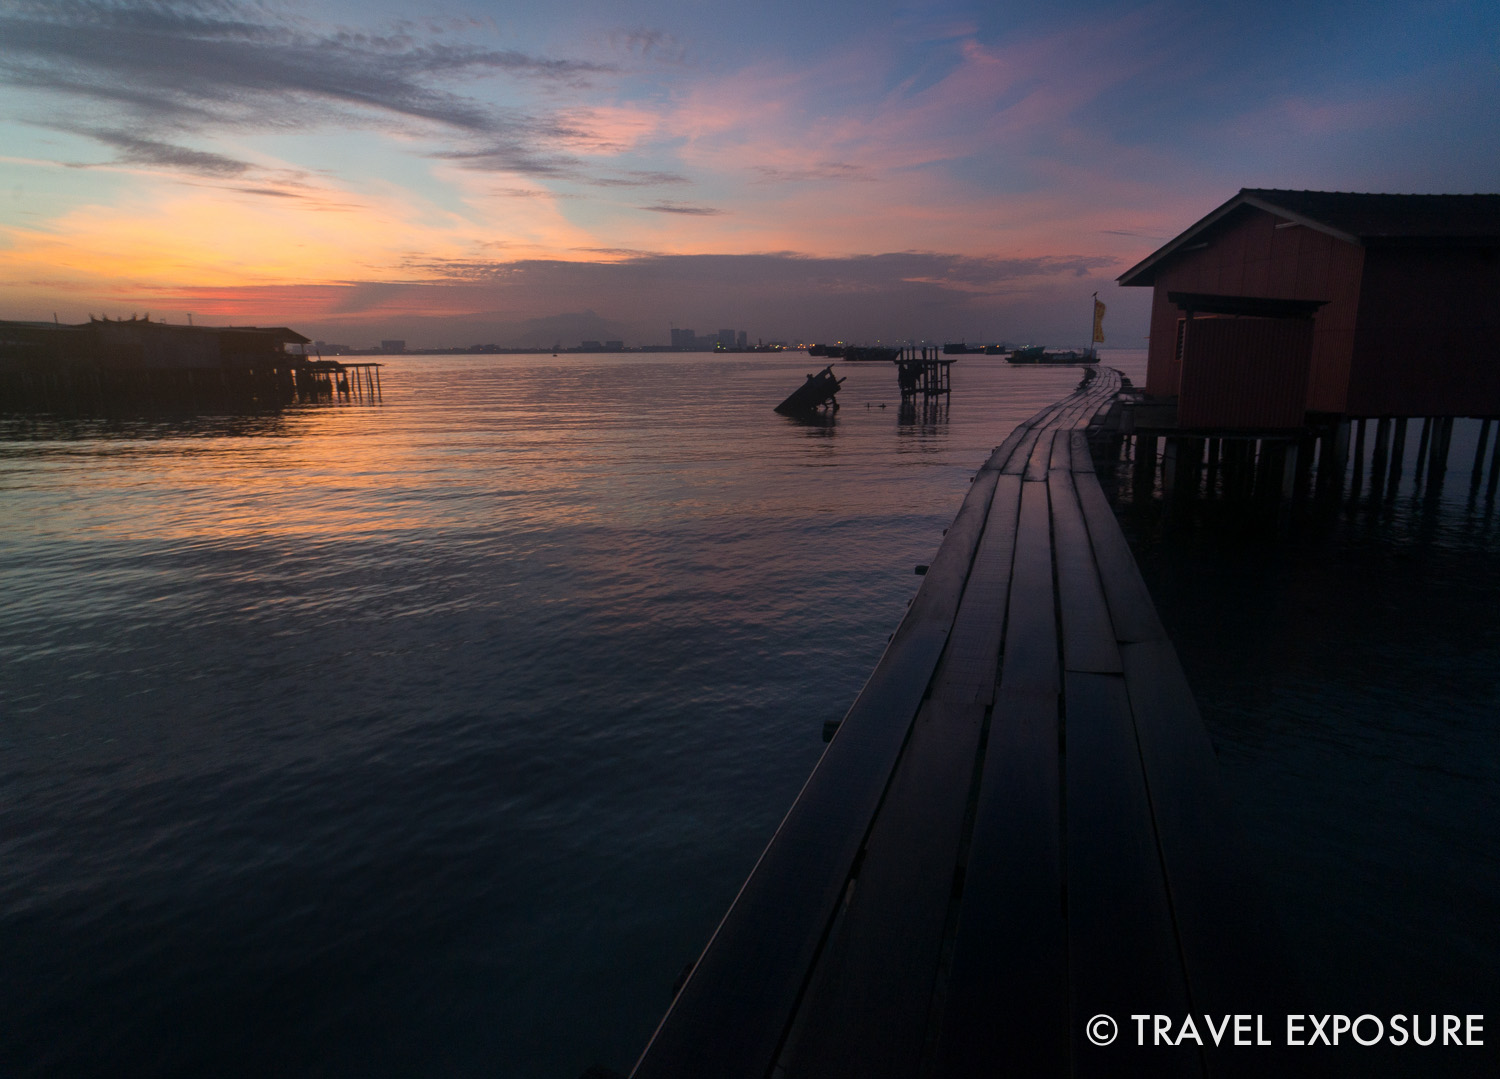 WEEK OF SEPTEMBER 22   The sun rises over Tan Jetty, one of the centuries-old Chinese clan jetties on the waterfront in Penang, Malaysia.